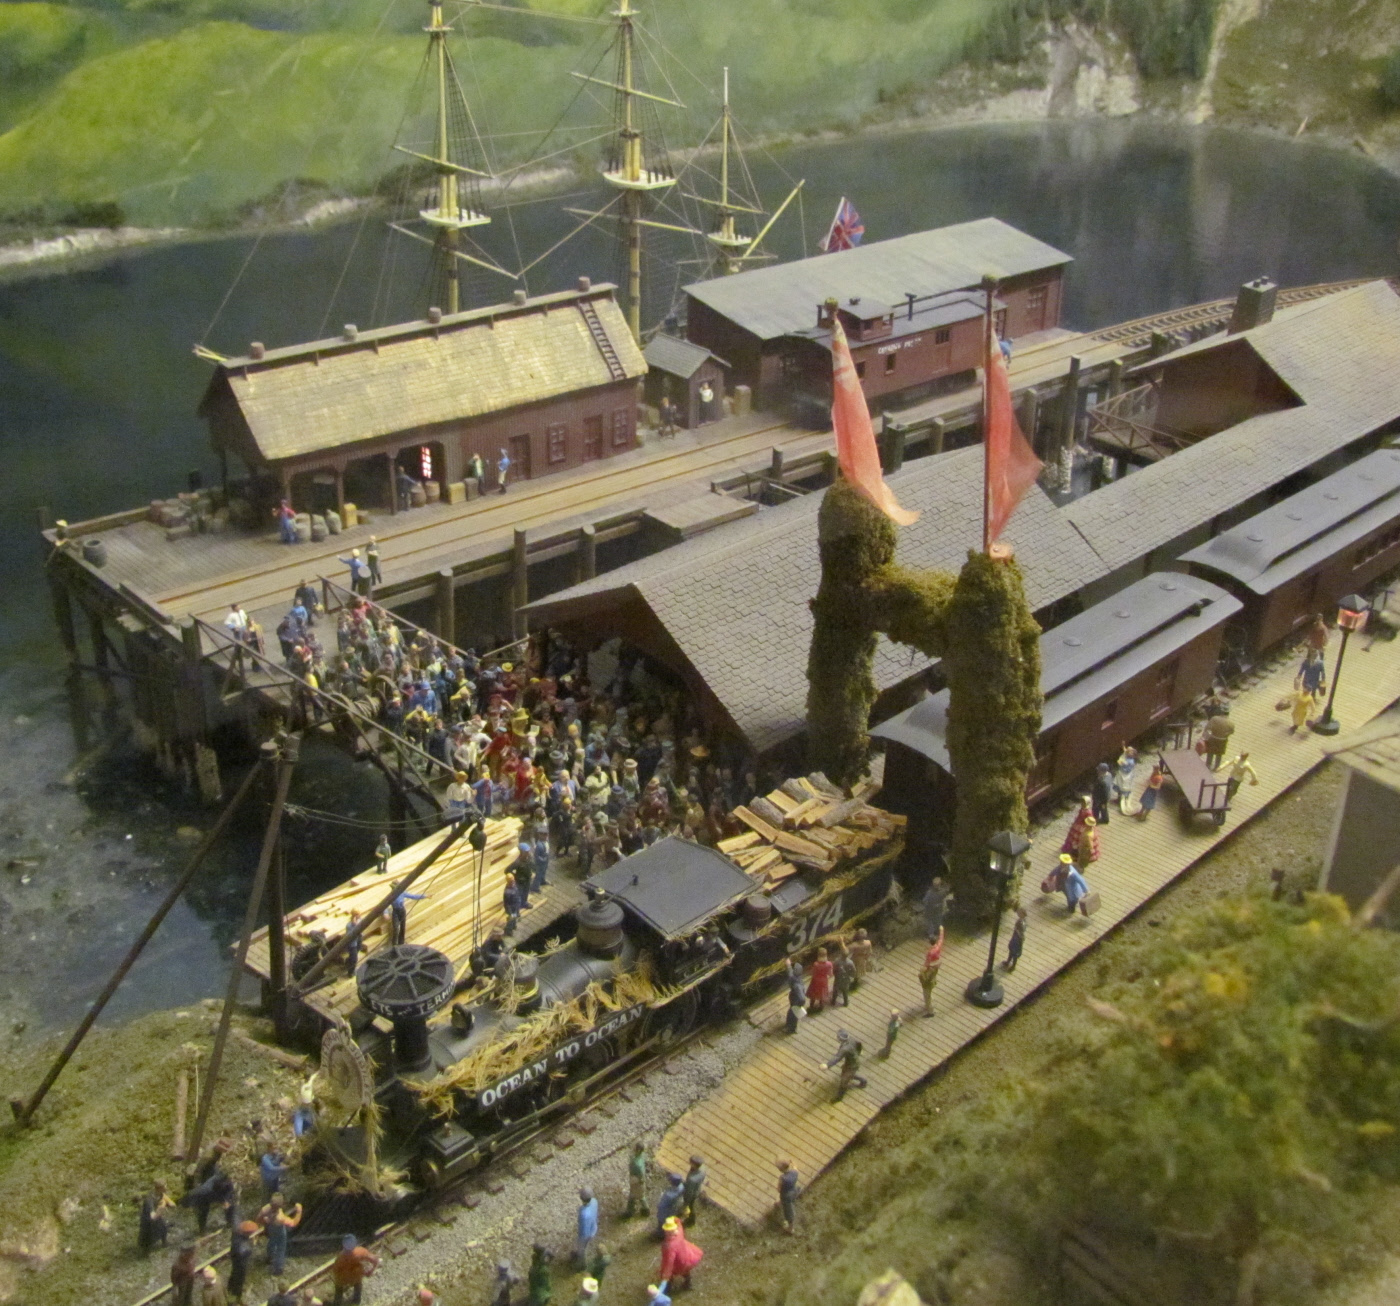 Boats dock at the wharf and townsfolk crowd together to board the train into towm. The dioramas at Miniature World are amazingly detailed and this scene shows a crowd and you can really imagine the pushing and shoving and noises of the moment captured in miniature!